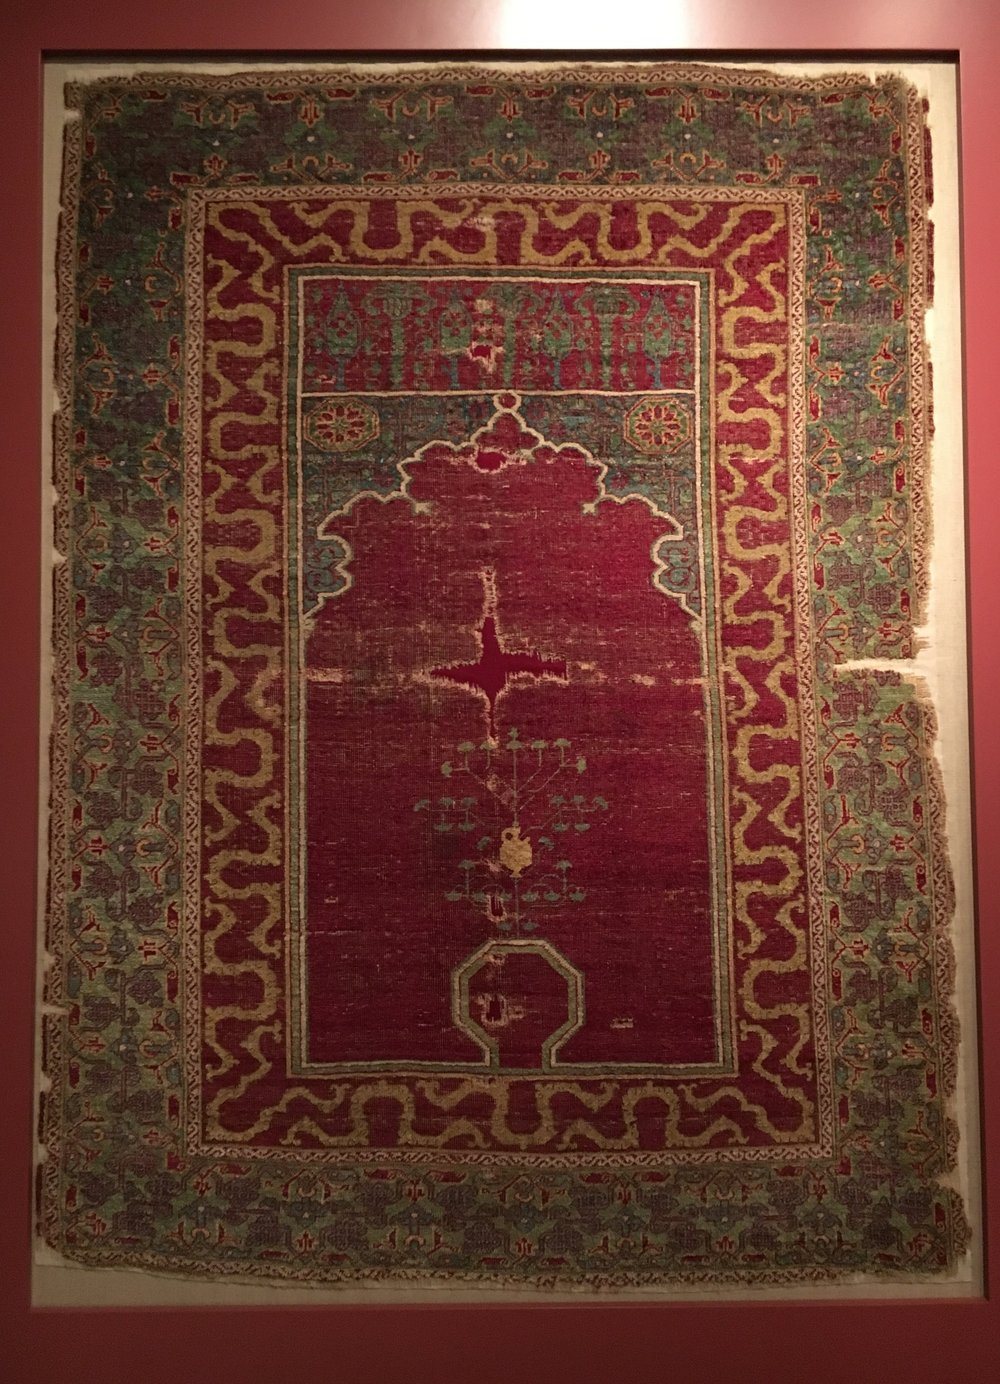 Knotted niche carpet,   around 1500, Egypt